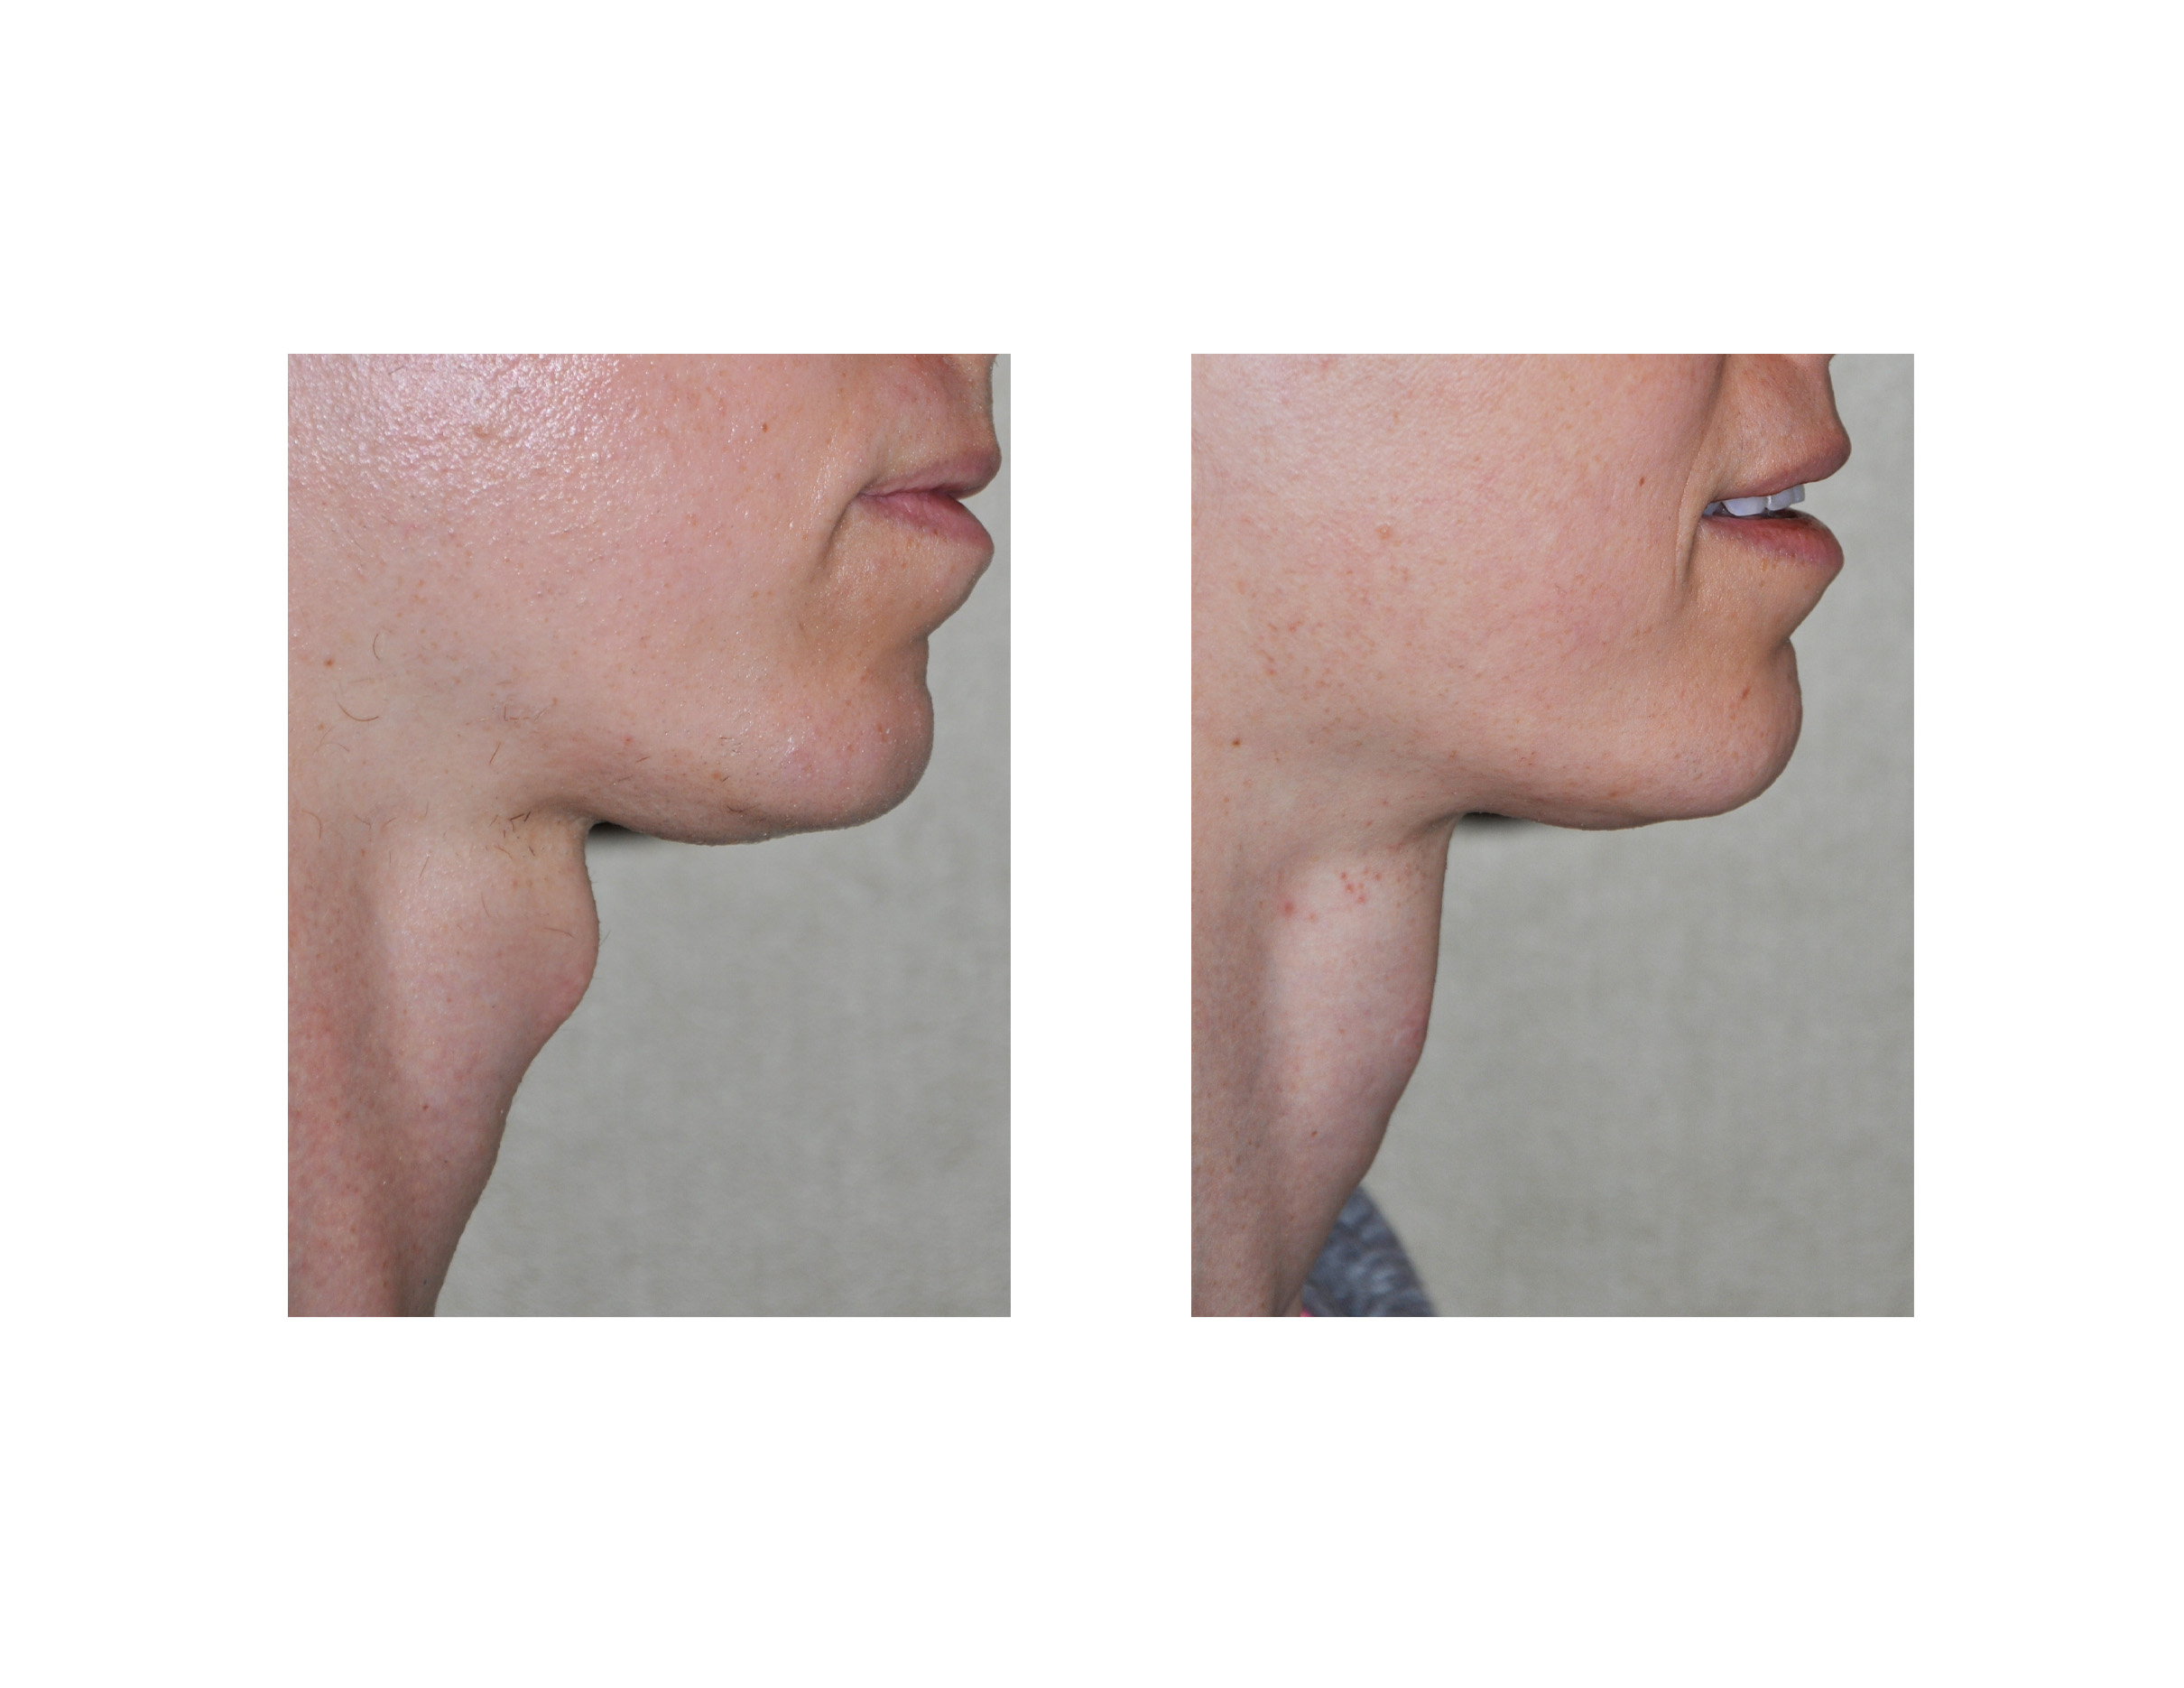 blog archiveadam s apple reduction tracheal shave in men